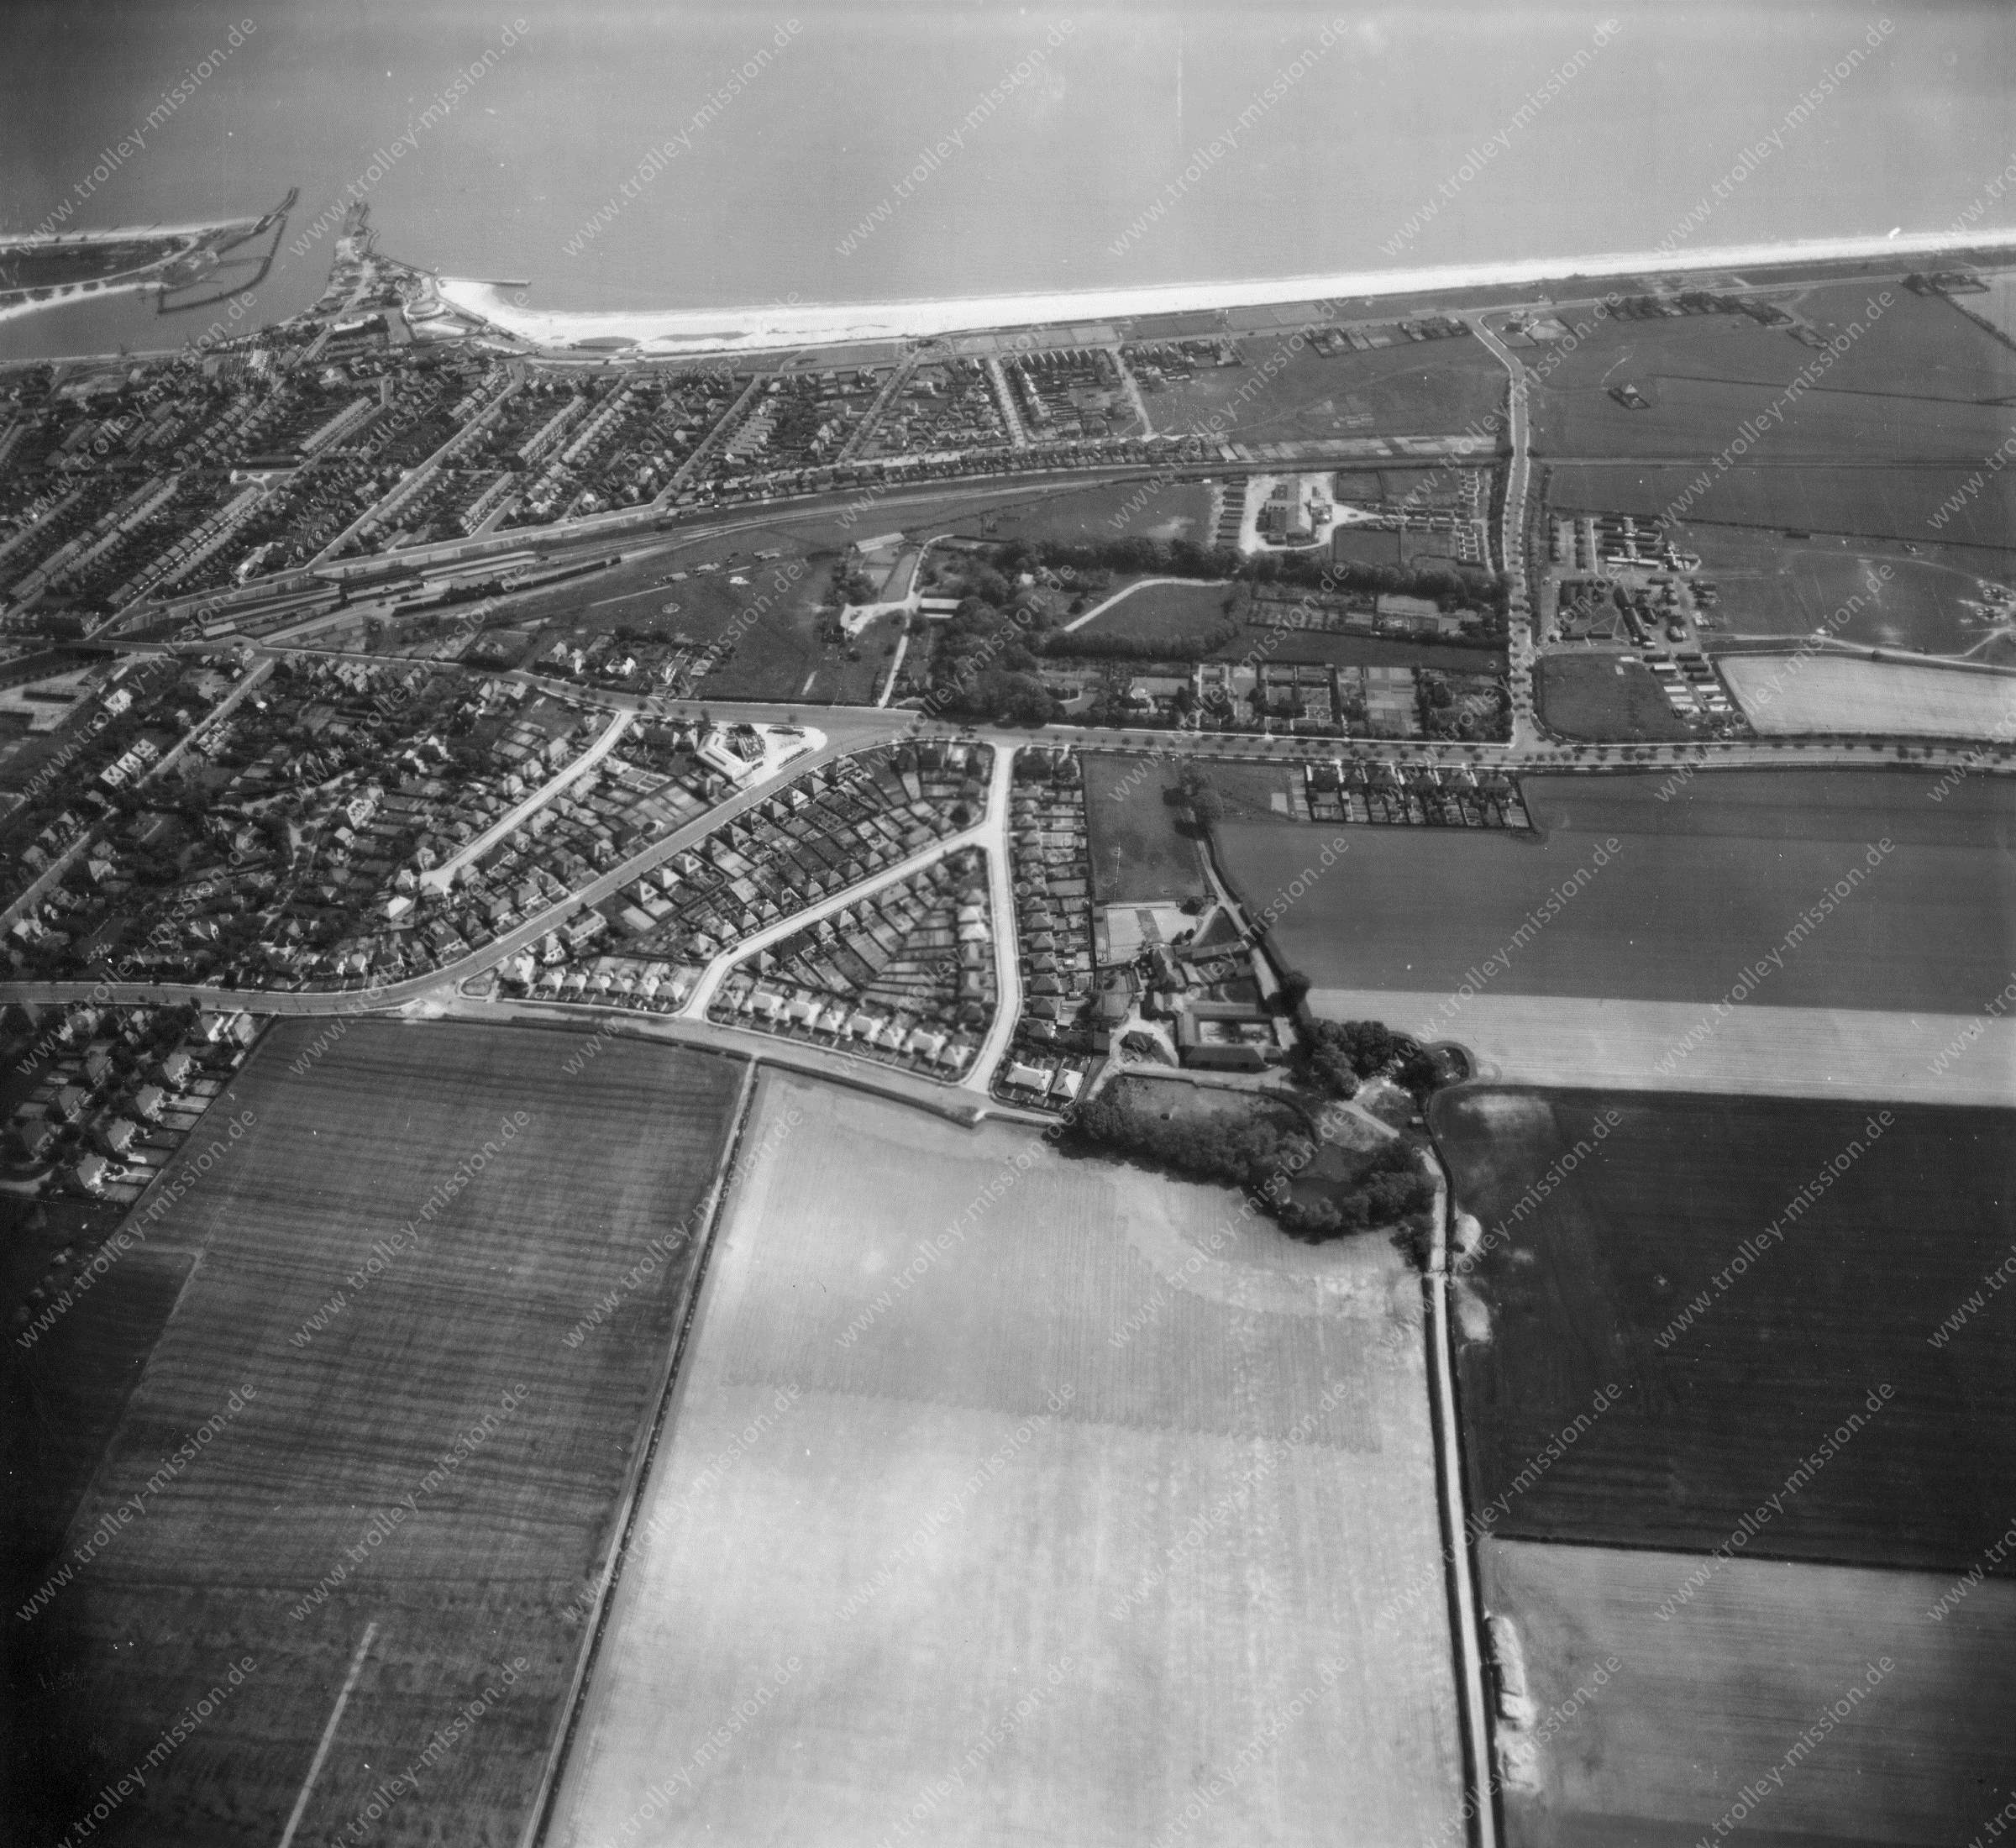 Great Yarmouth - Aerial Photograph May 1945 - Airborne Imagery 2/2